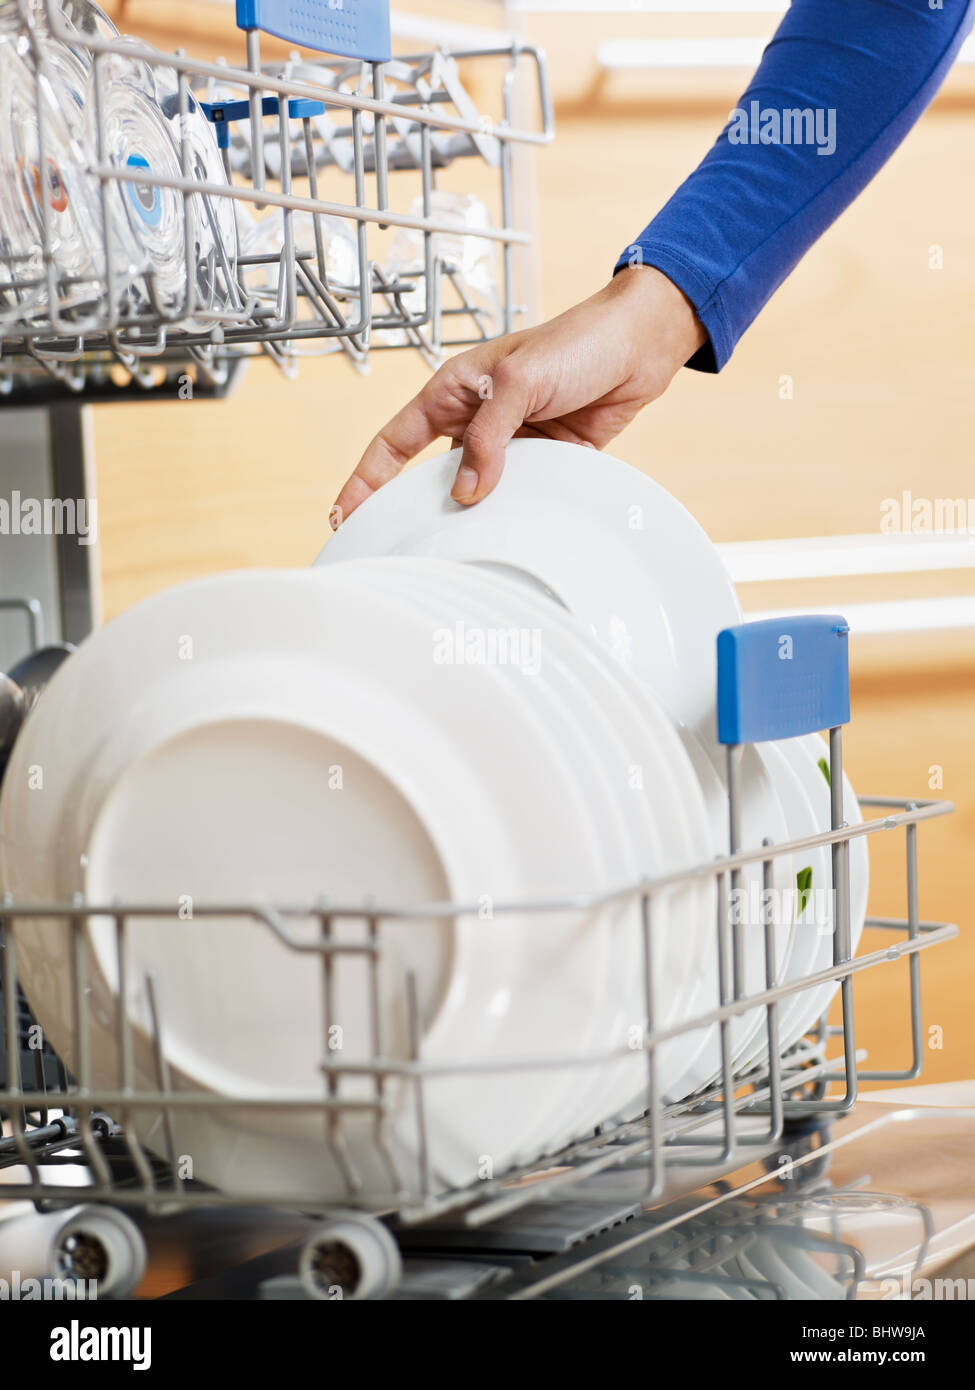 close up of woman in kitchen using dishwasher - Stock Image